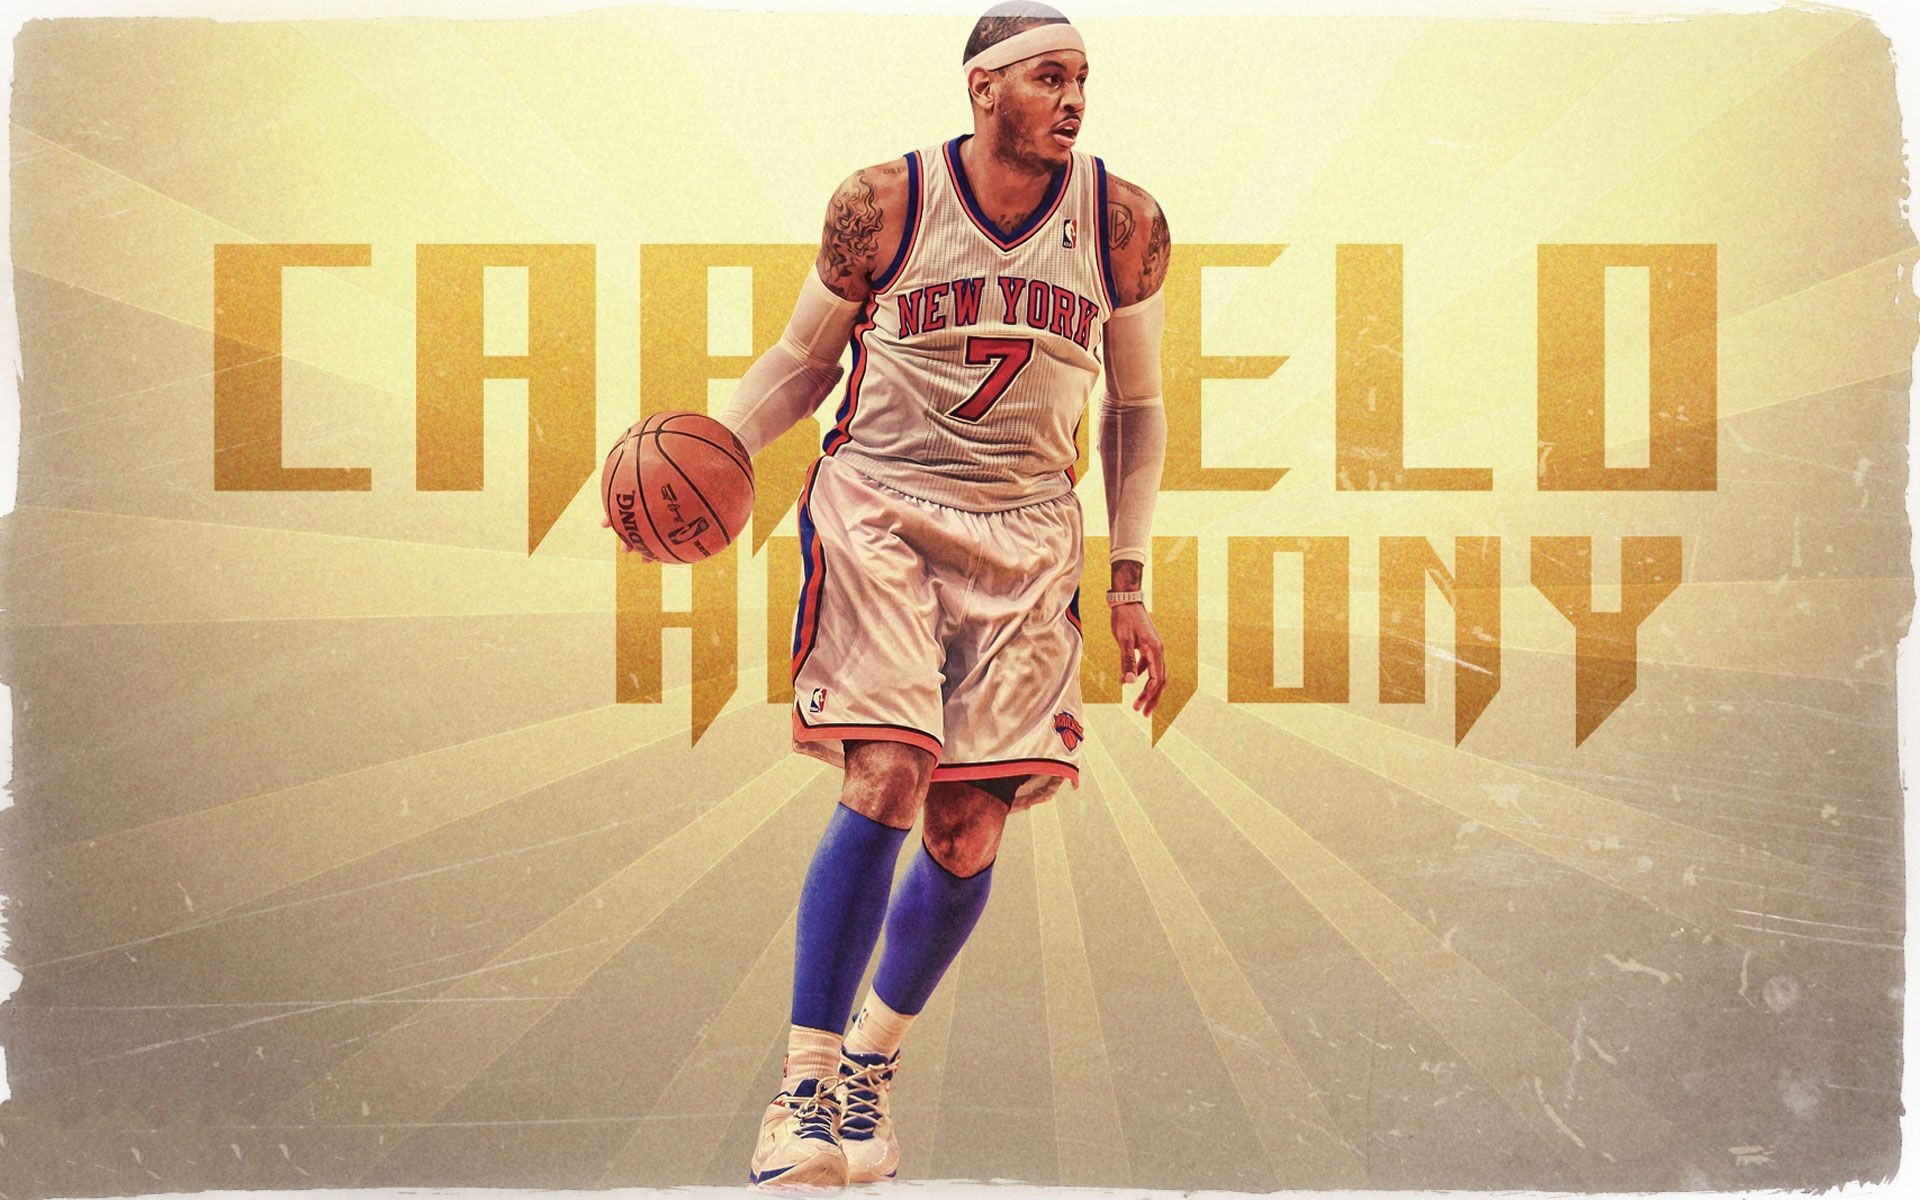 1920x1200 ... Carmelo Anthony New York Knicks Backgrounds For Desktop, Laptop and  Mobiles. Here You Can Download More than 5 Million Photography collections  Uploaded ...